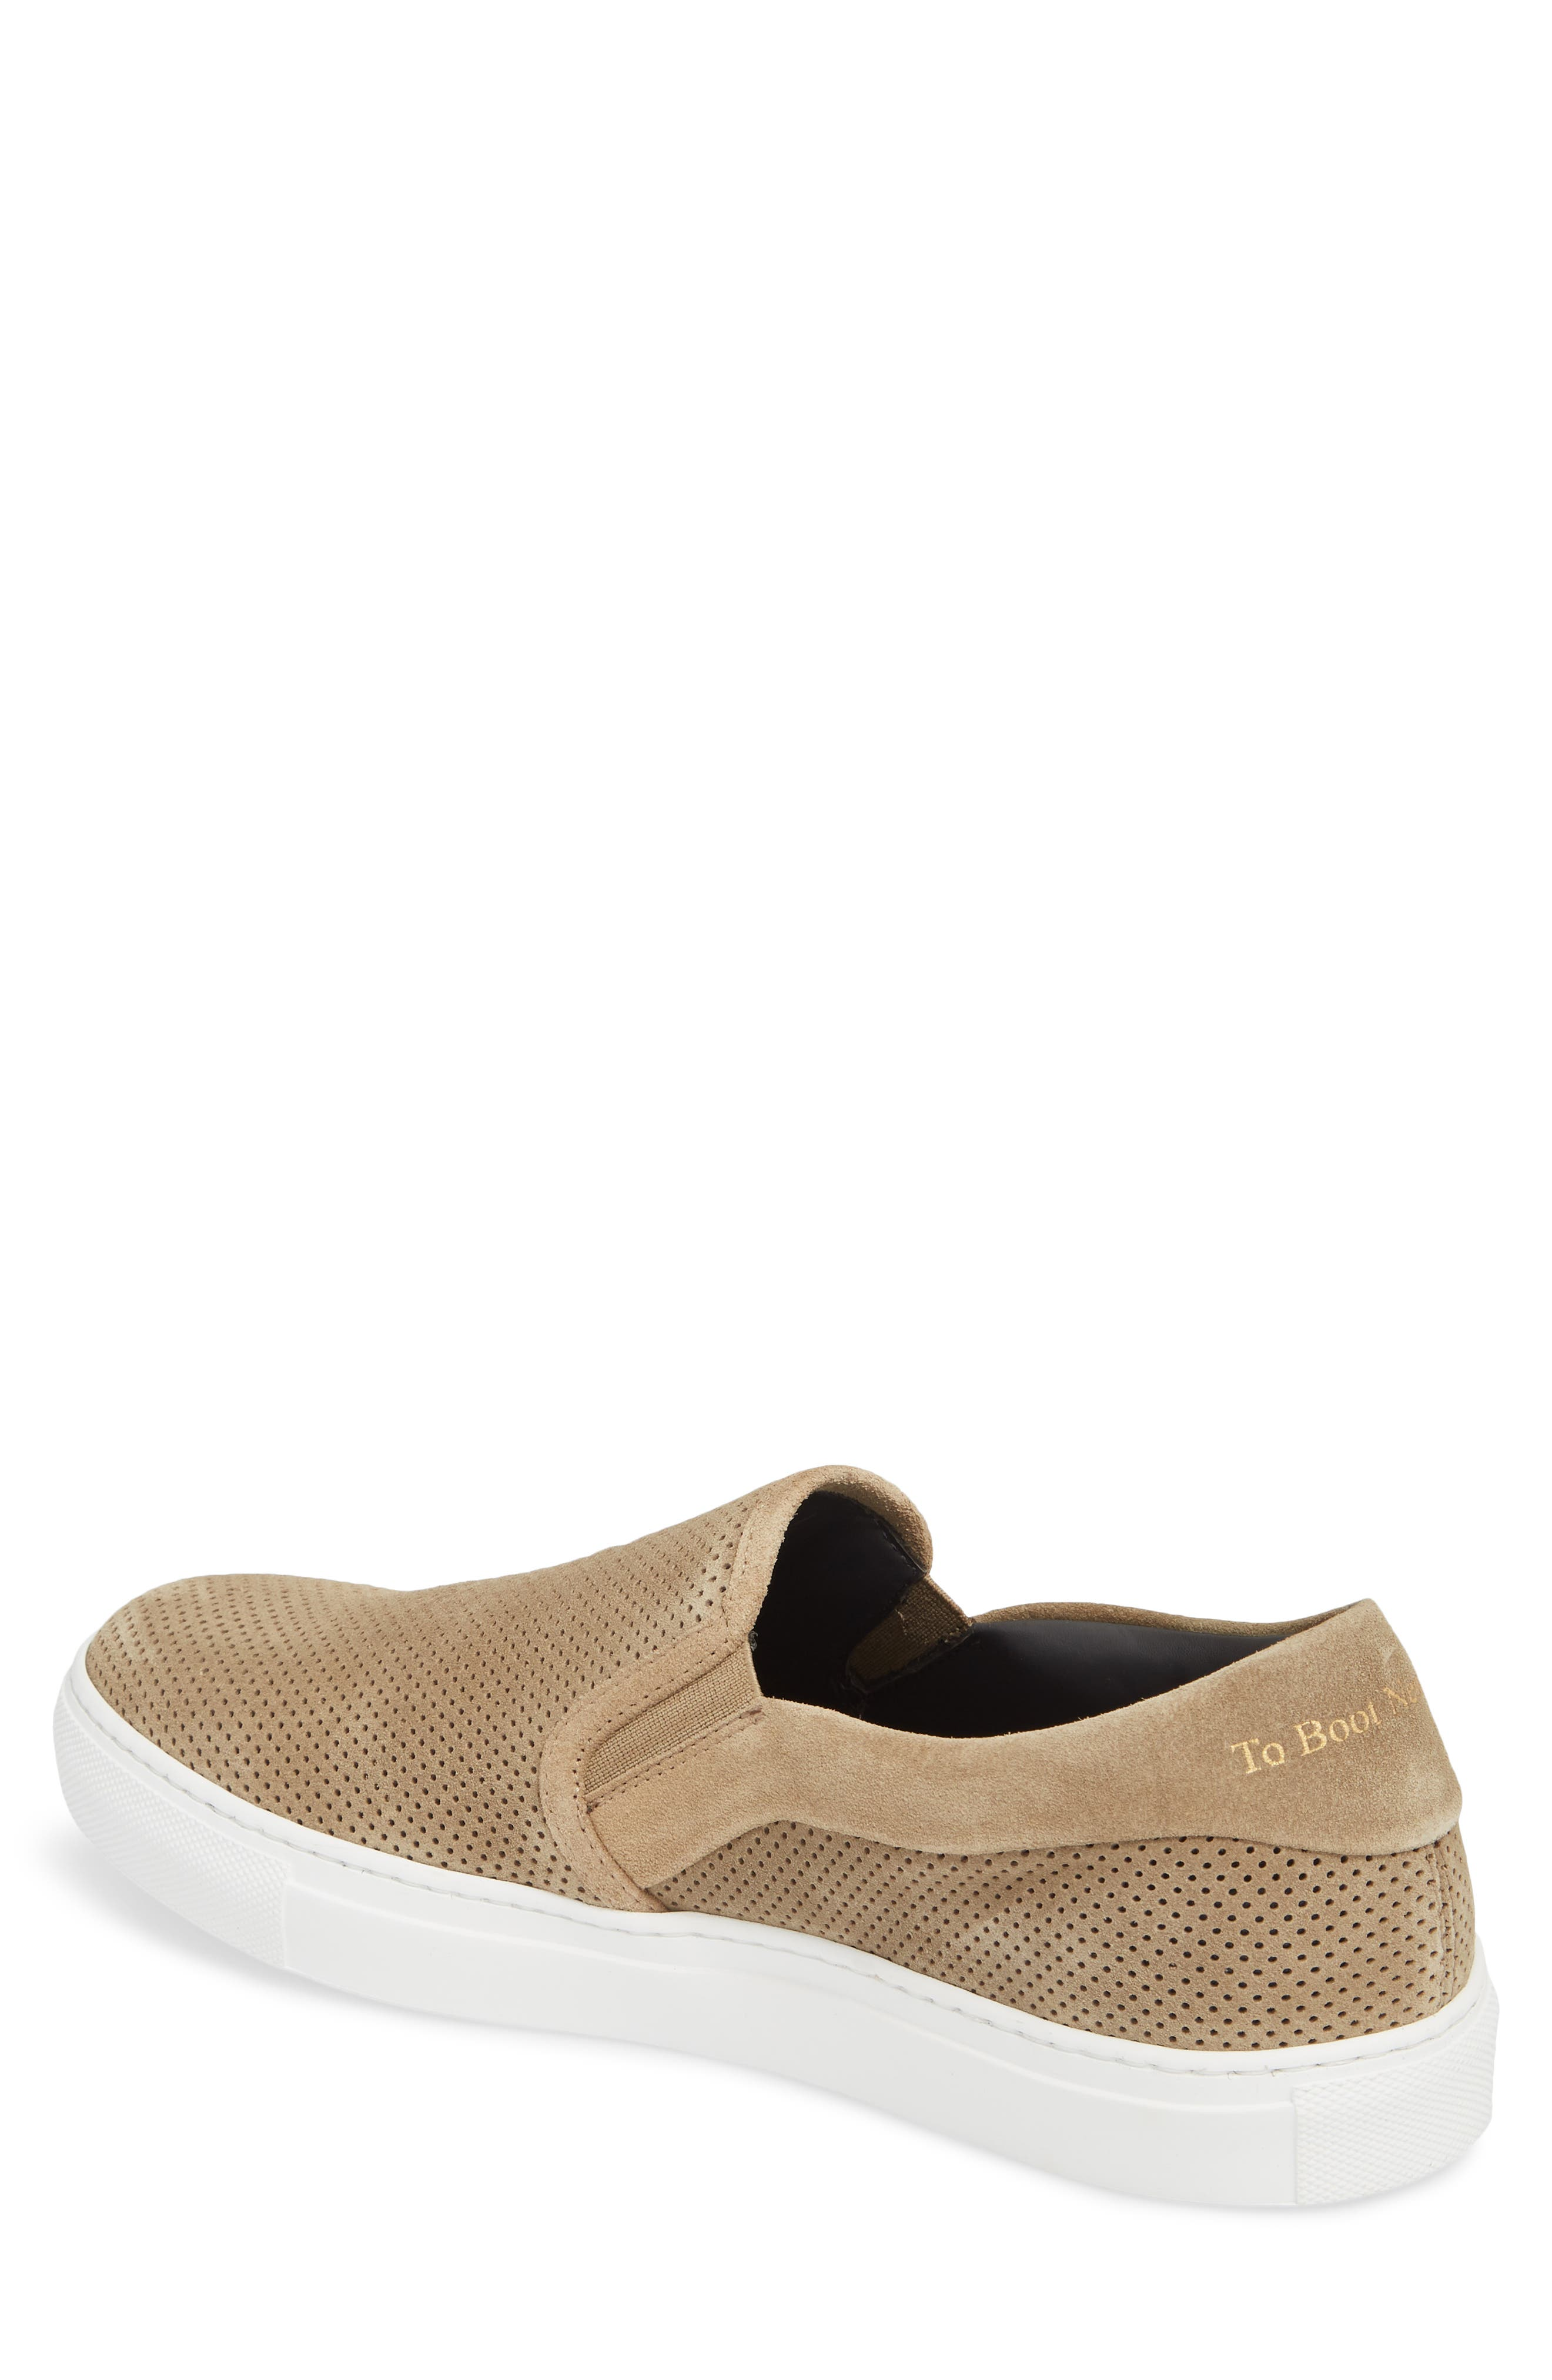 Buelton Perforated Slip-On Sneaker,                             Alternate thumbnail 2, color,                             BROWN SUEDE